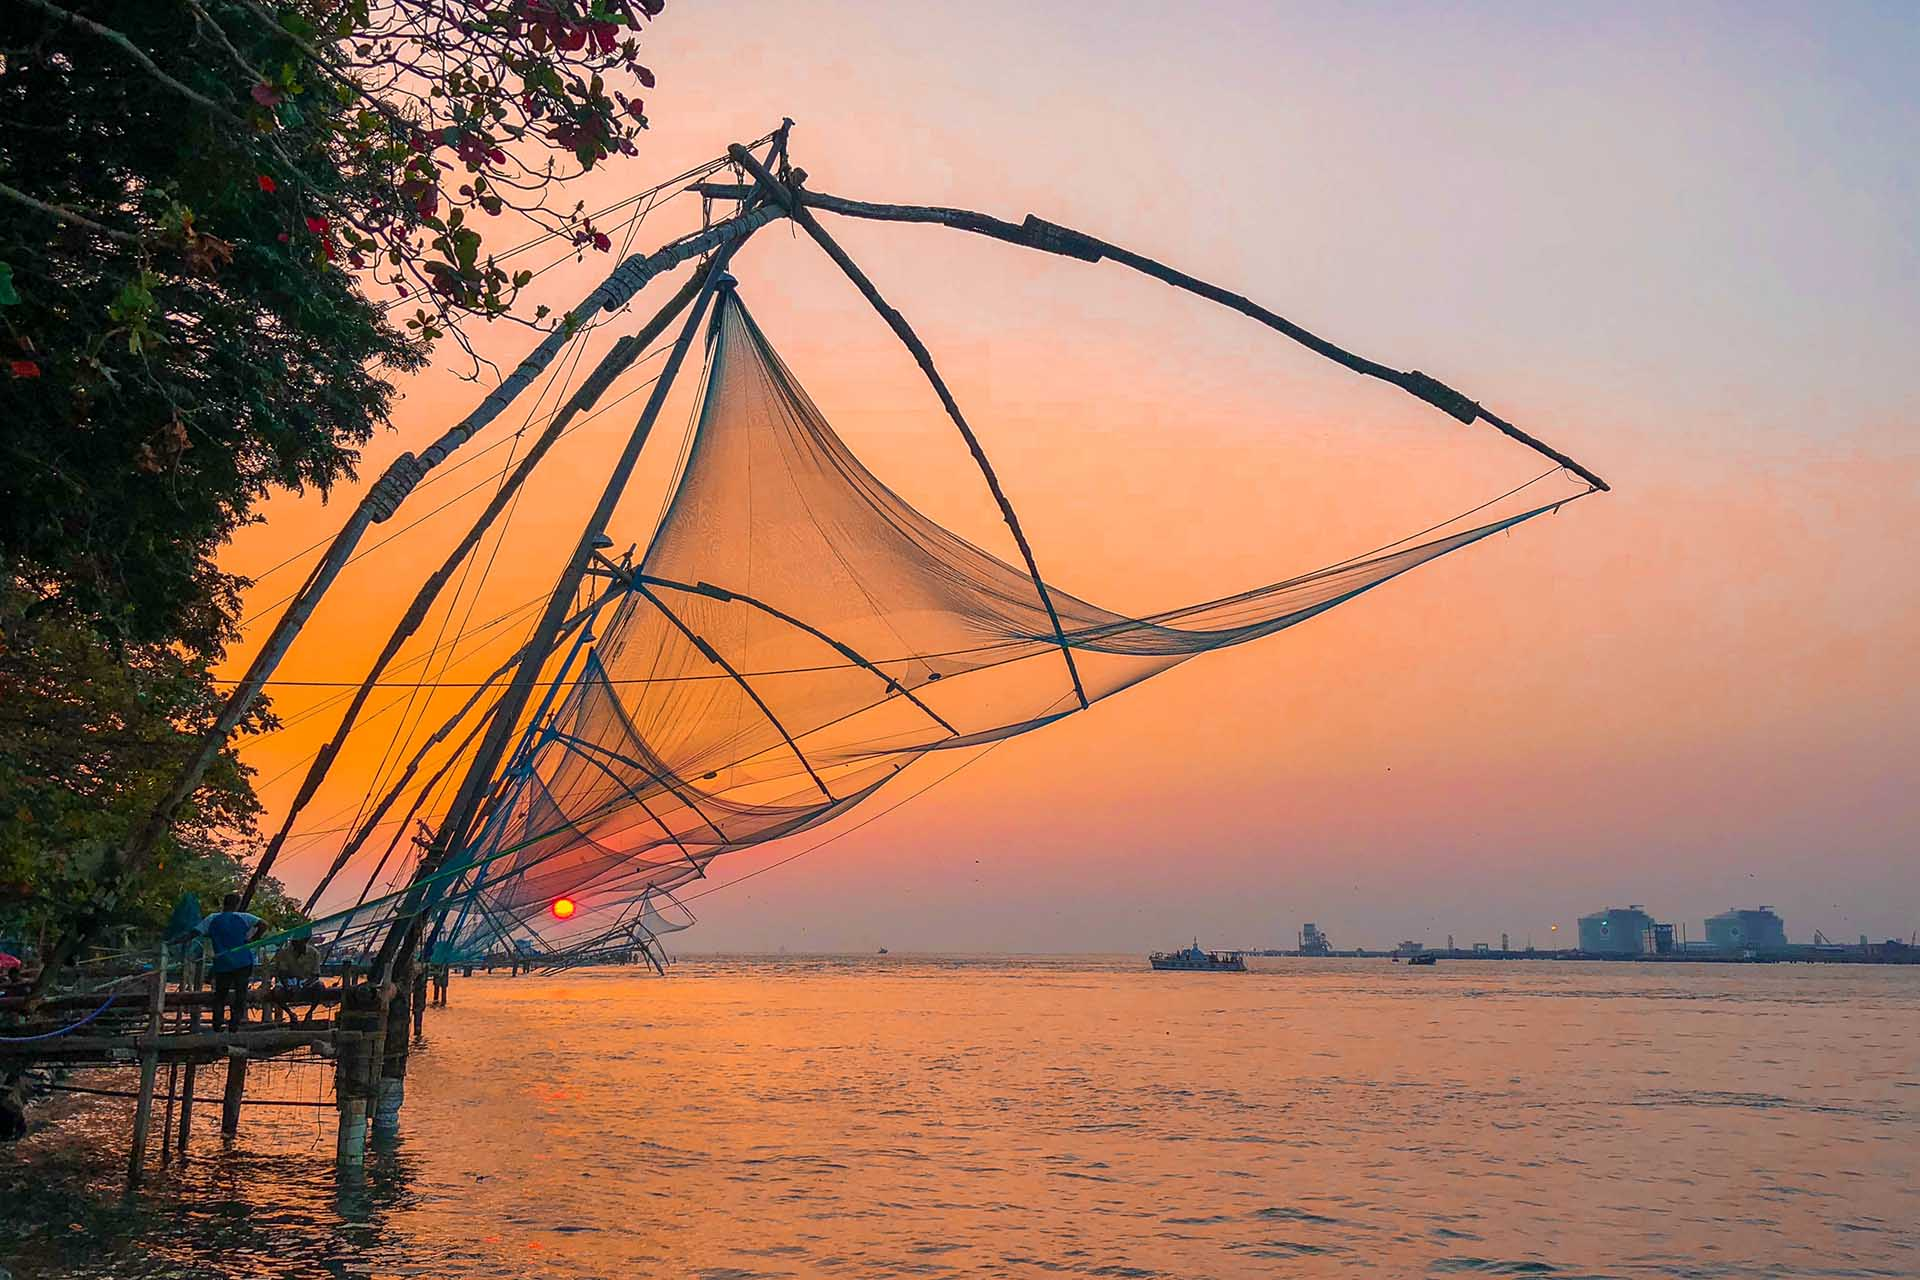 8 Things To Do In Fort Kochi Kerala, South India